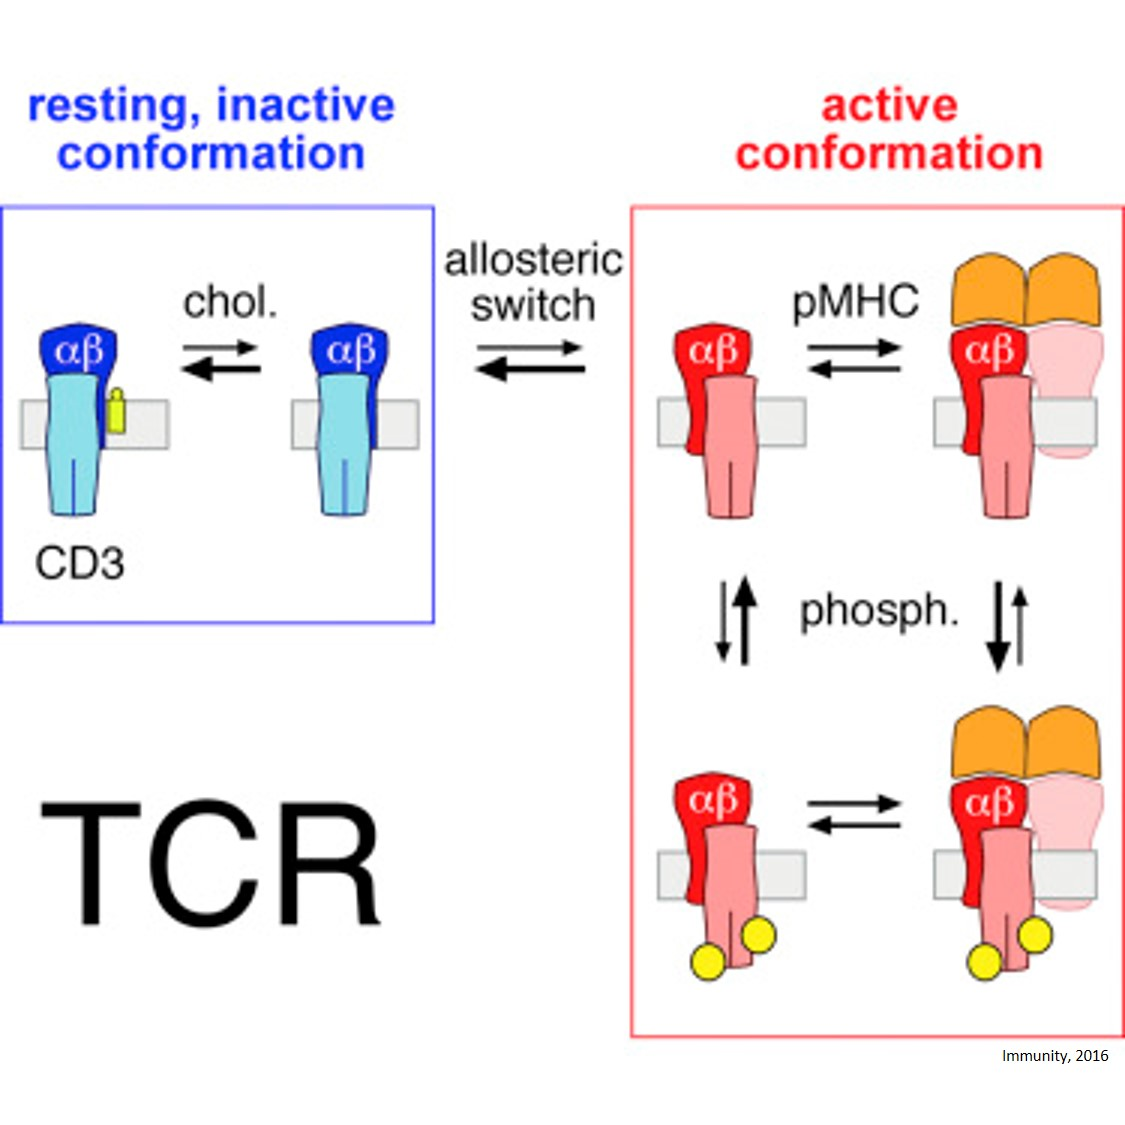 Role of cholesterol in immune (T cell) activation